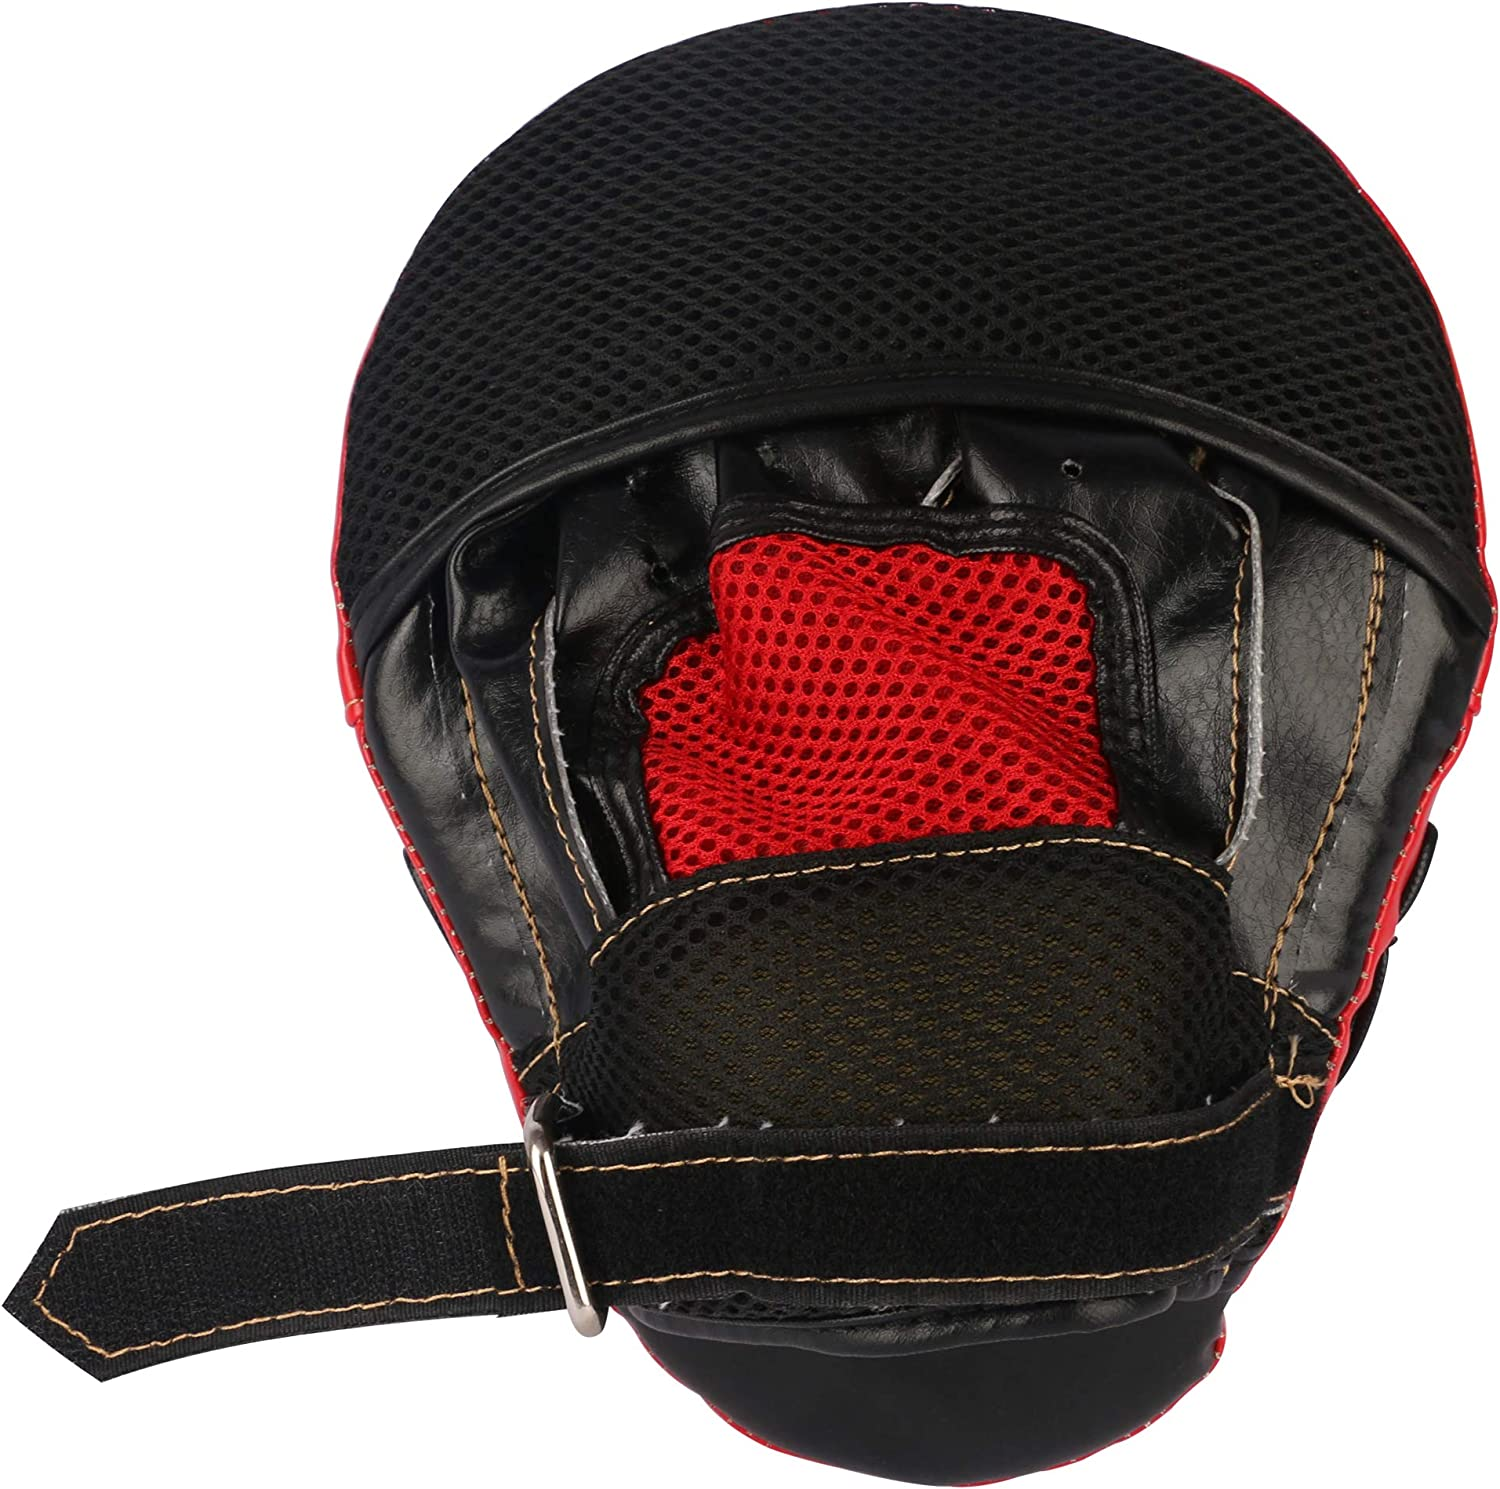 GINGPAI BOXING Curved Punching Mitts 1PC//2PC Leather Training Hand Pads for MMA Karate,Muay Thai Kick,Sparring,Martial Arts